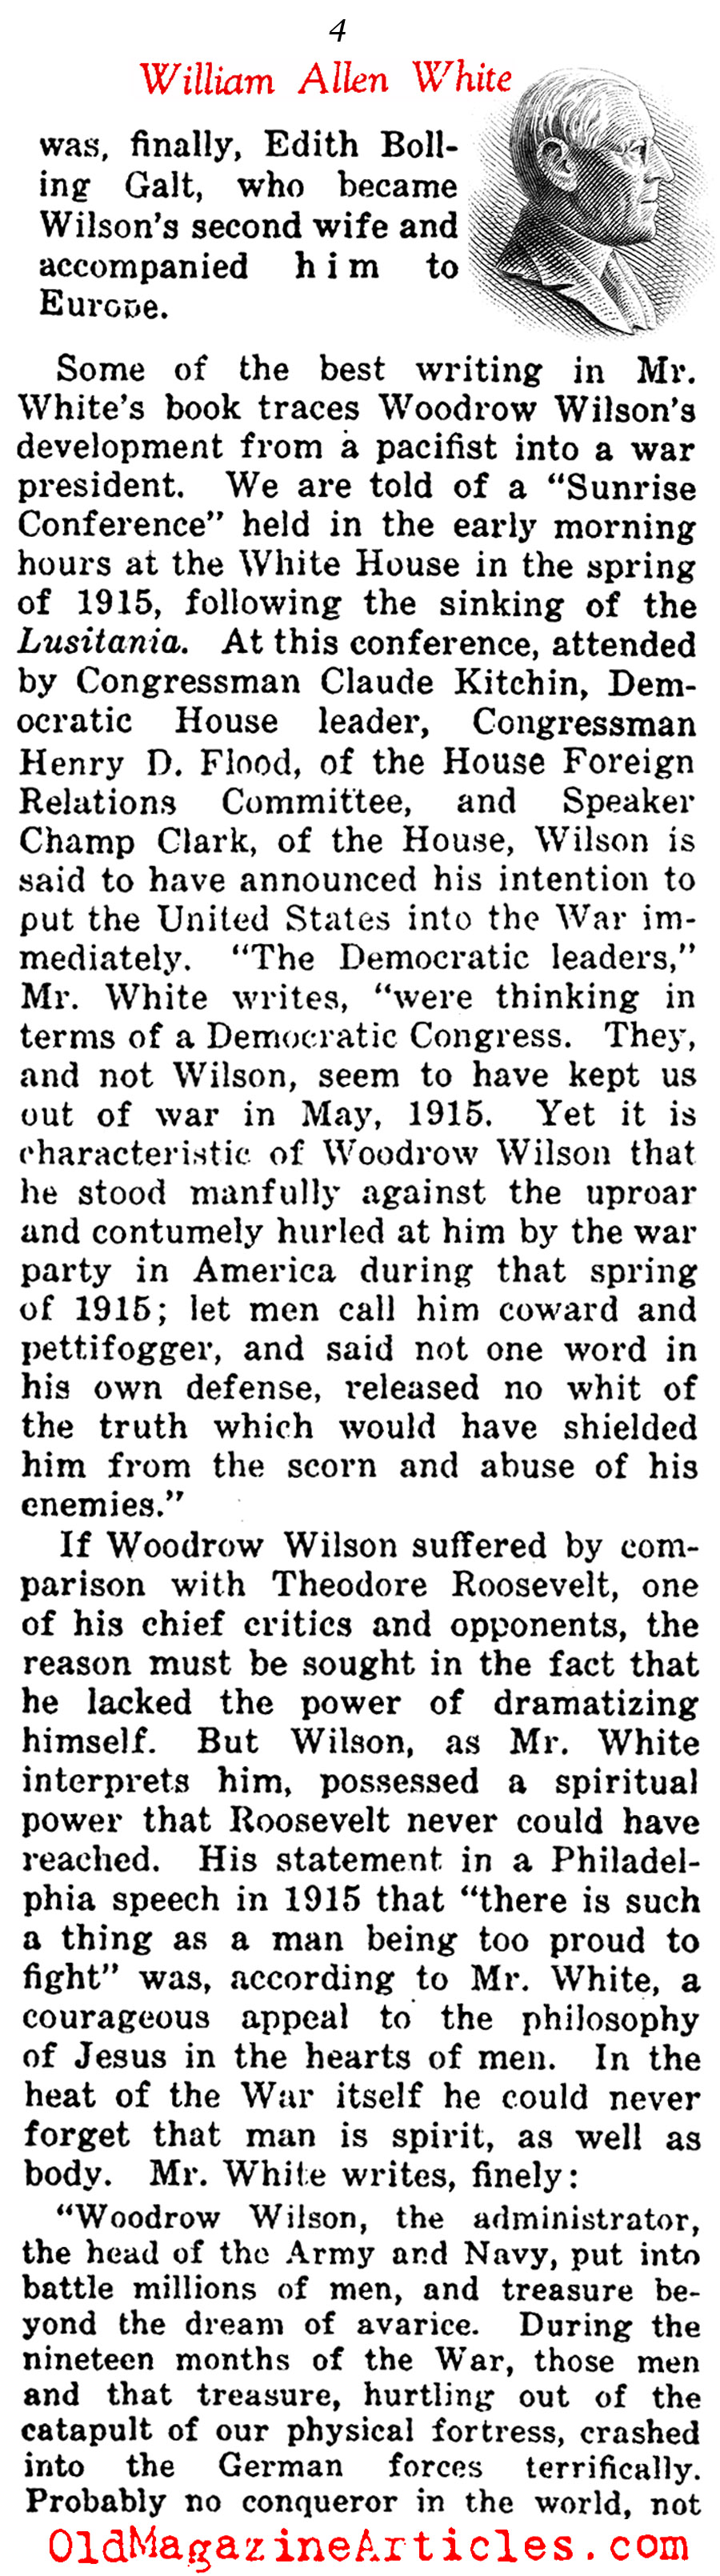 The Life of Woodrow Wilson  (Current Opinion, 1925)